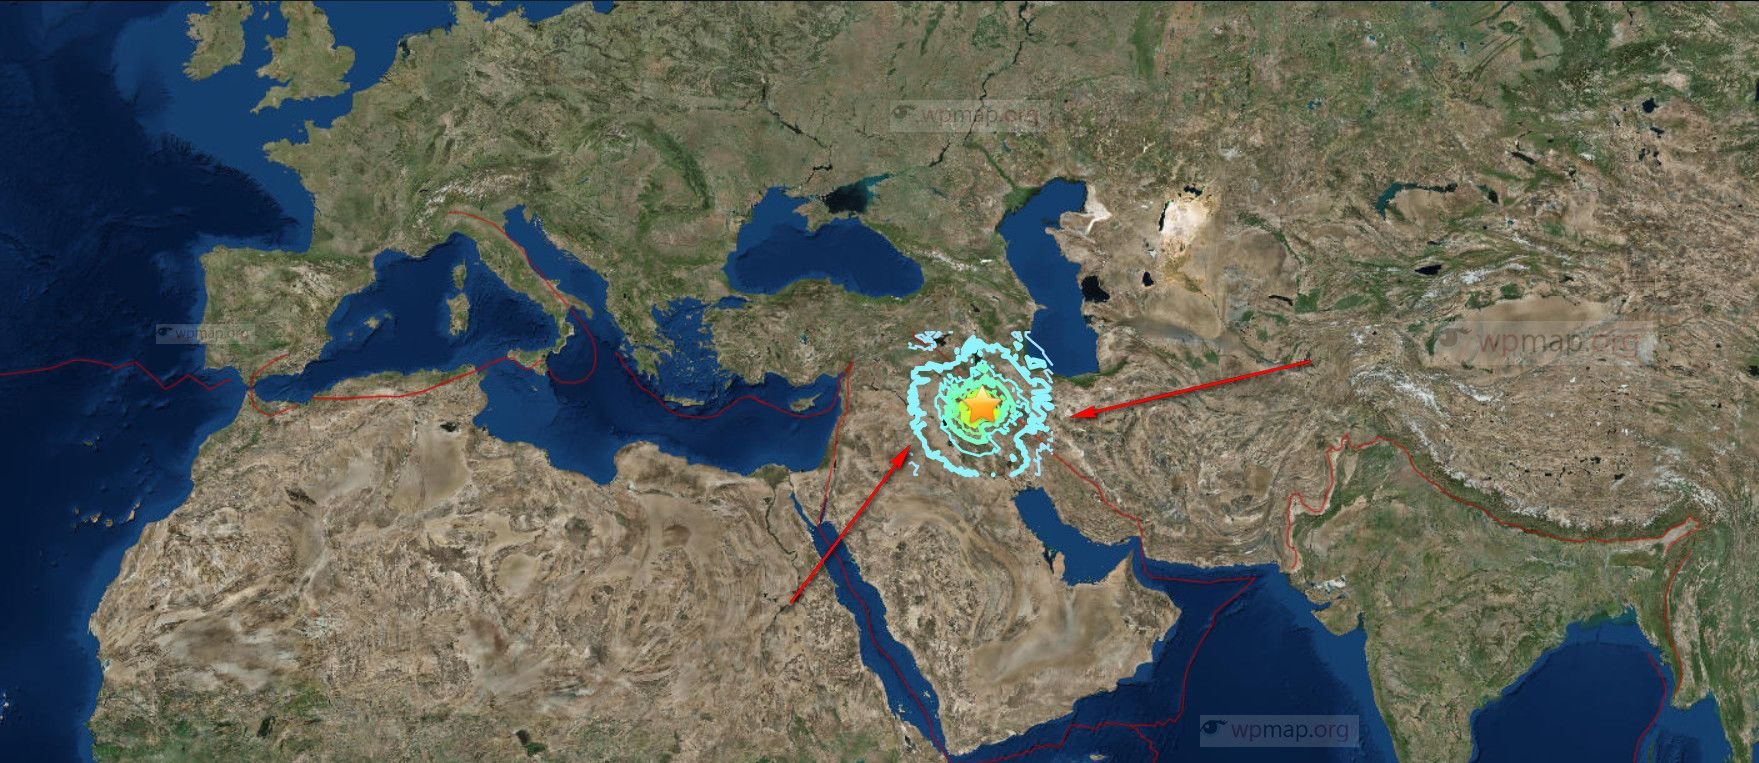 Sulaymaniyah earthquake map map of sulaymaniyah map of sulaymaniyah iraq middle east maps sulaymaniyah earthquake map sulaymaniyah earthquake map a huge earthquake magnitude has struck near the iraniraq gumiabroncs Image collections